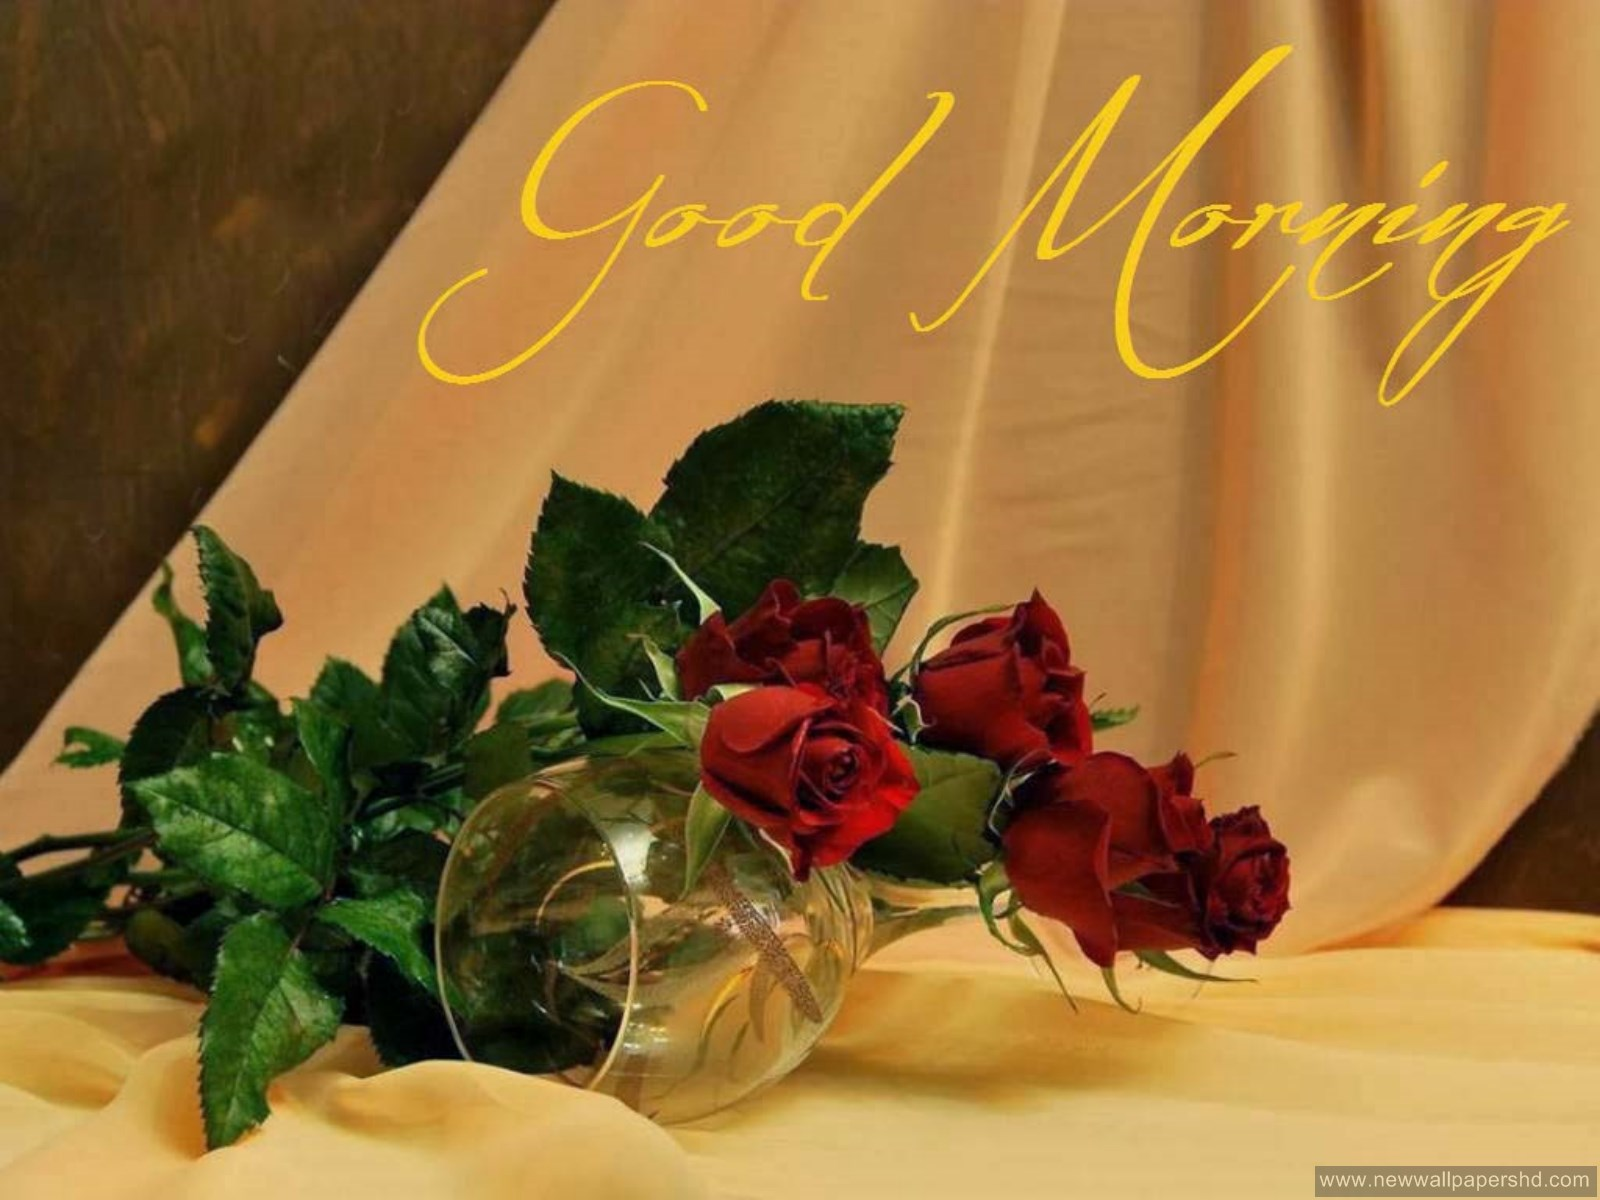 good morning wallpaper high resolution download 1600x1200